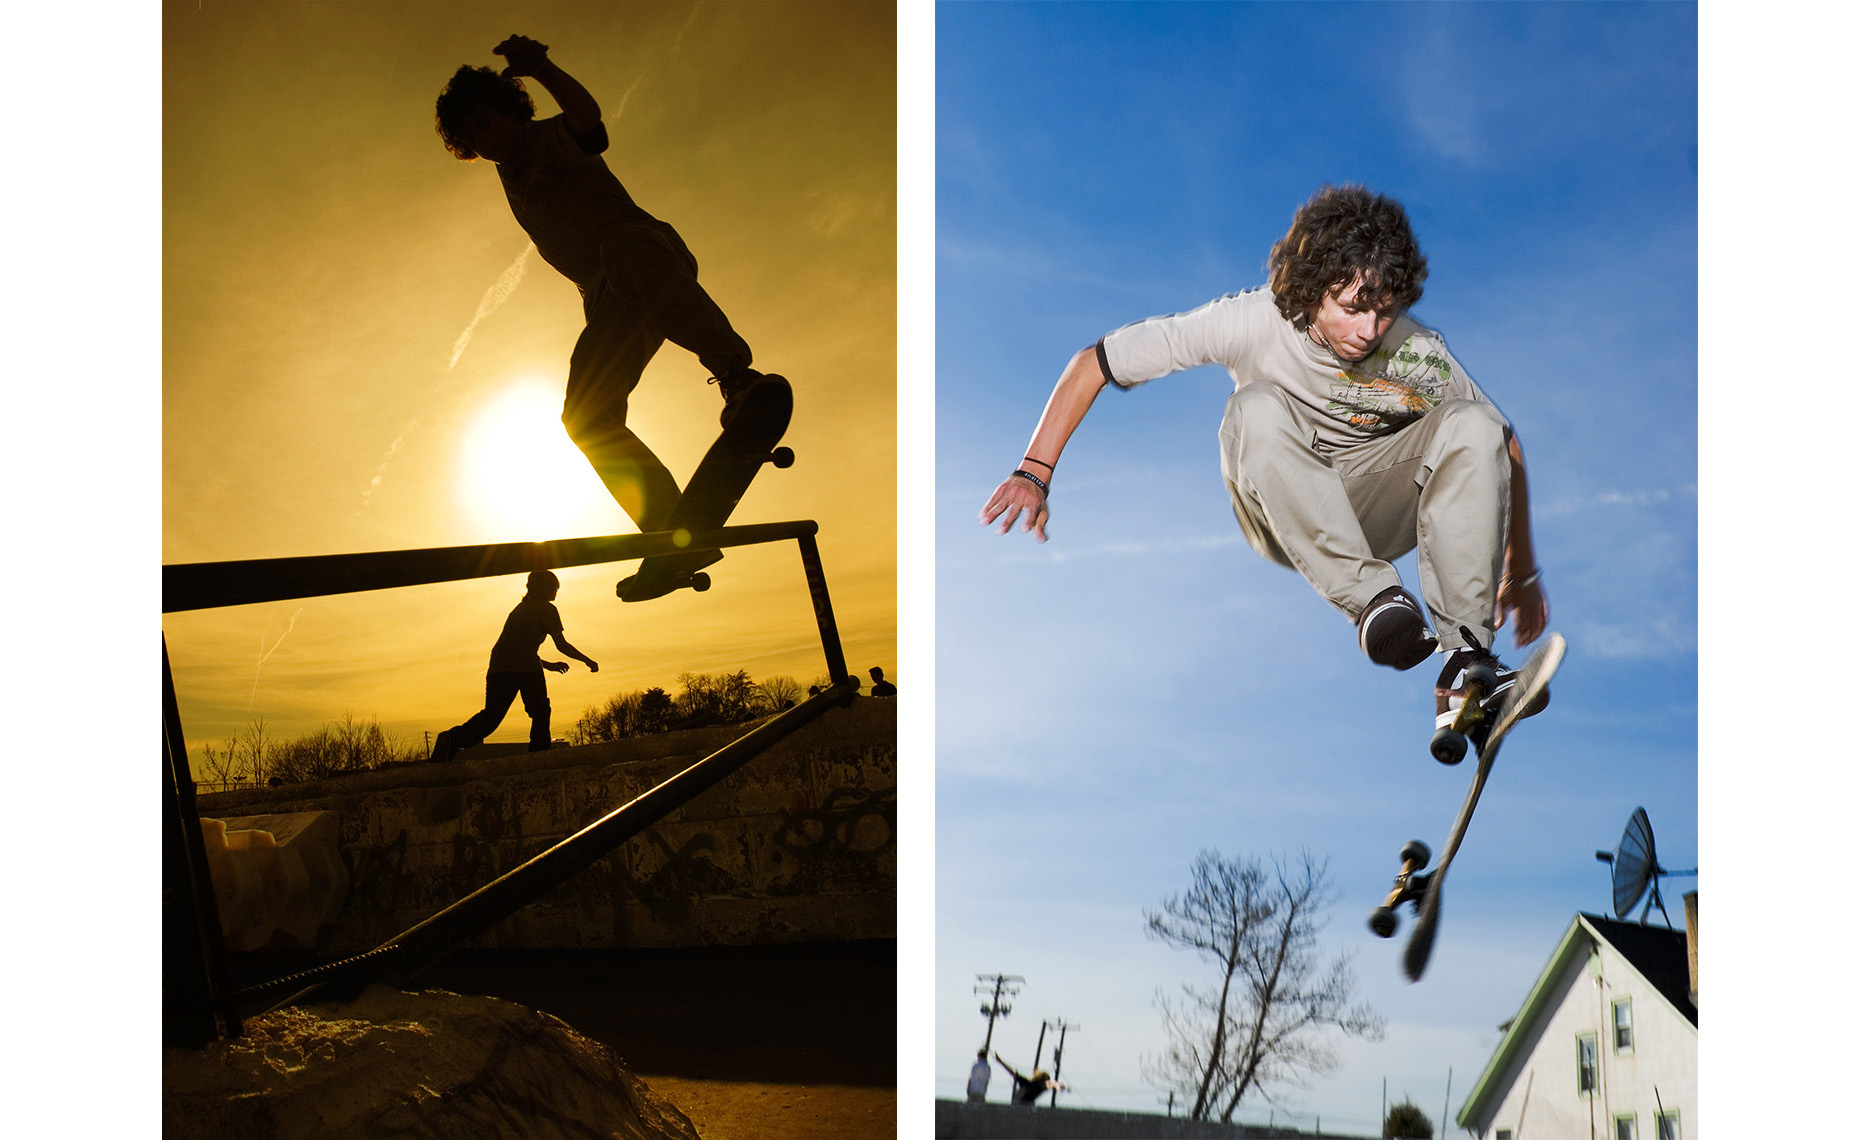 Street Skaters | Washington DC Photographer Aaron Clamage